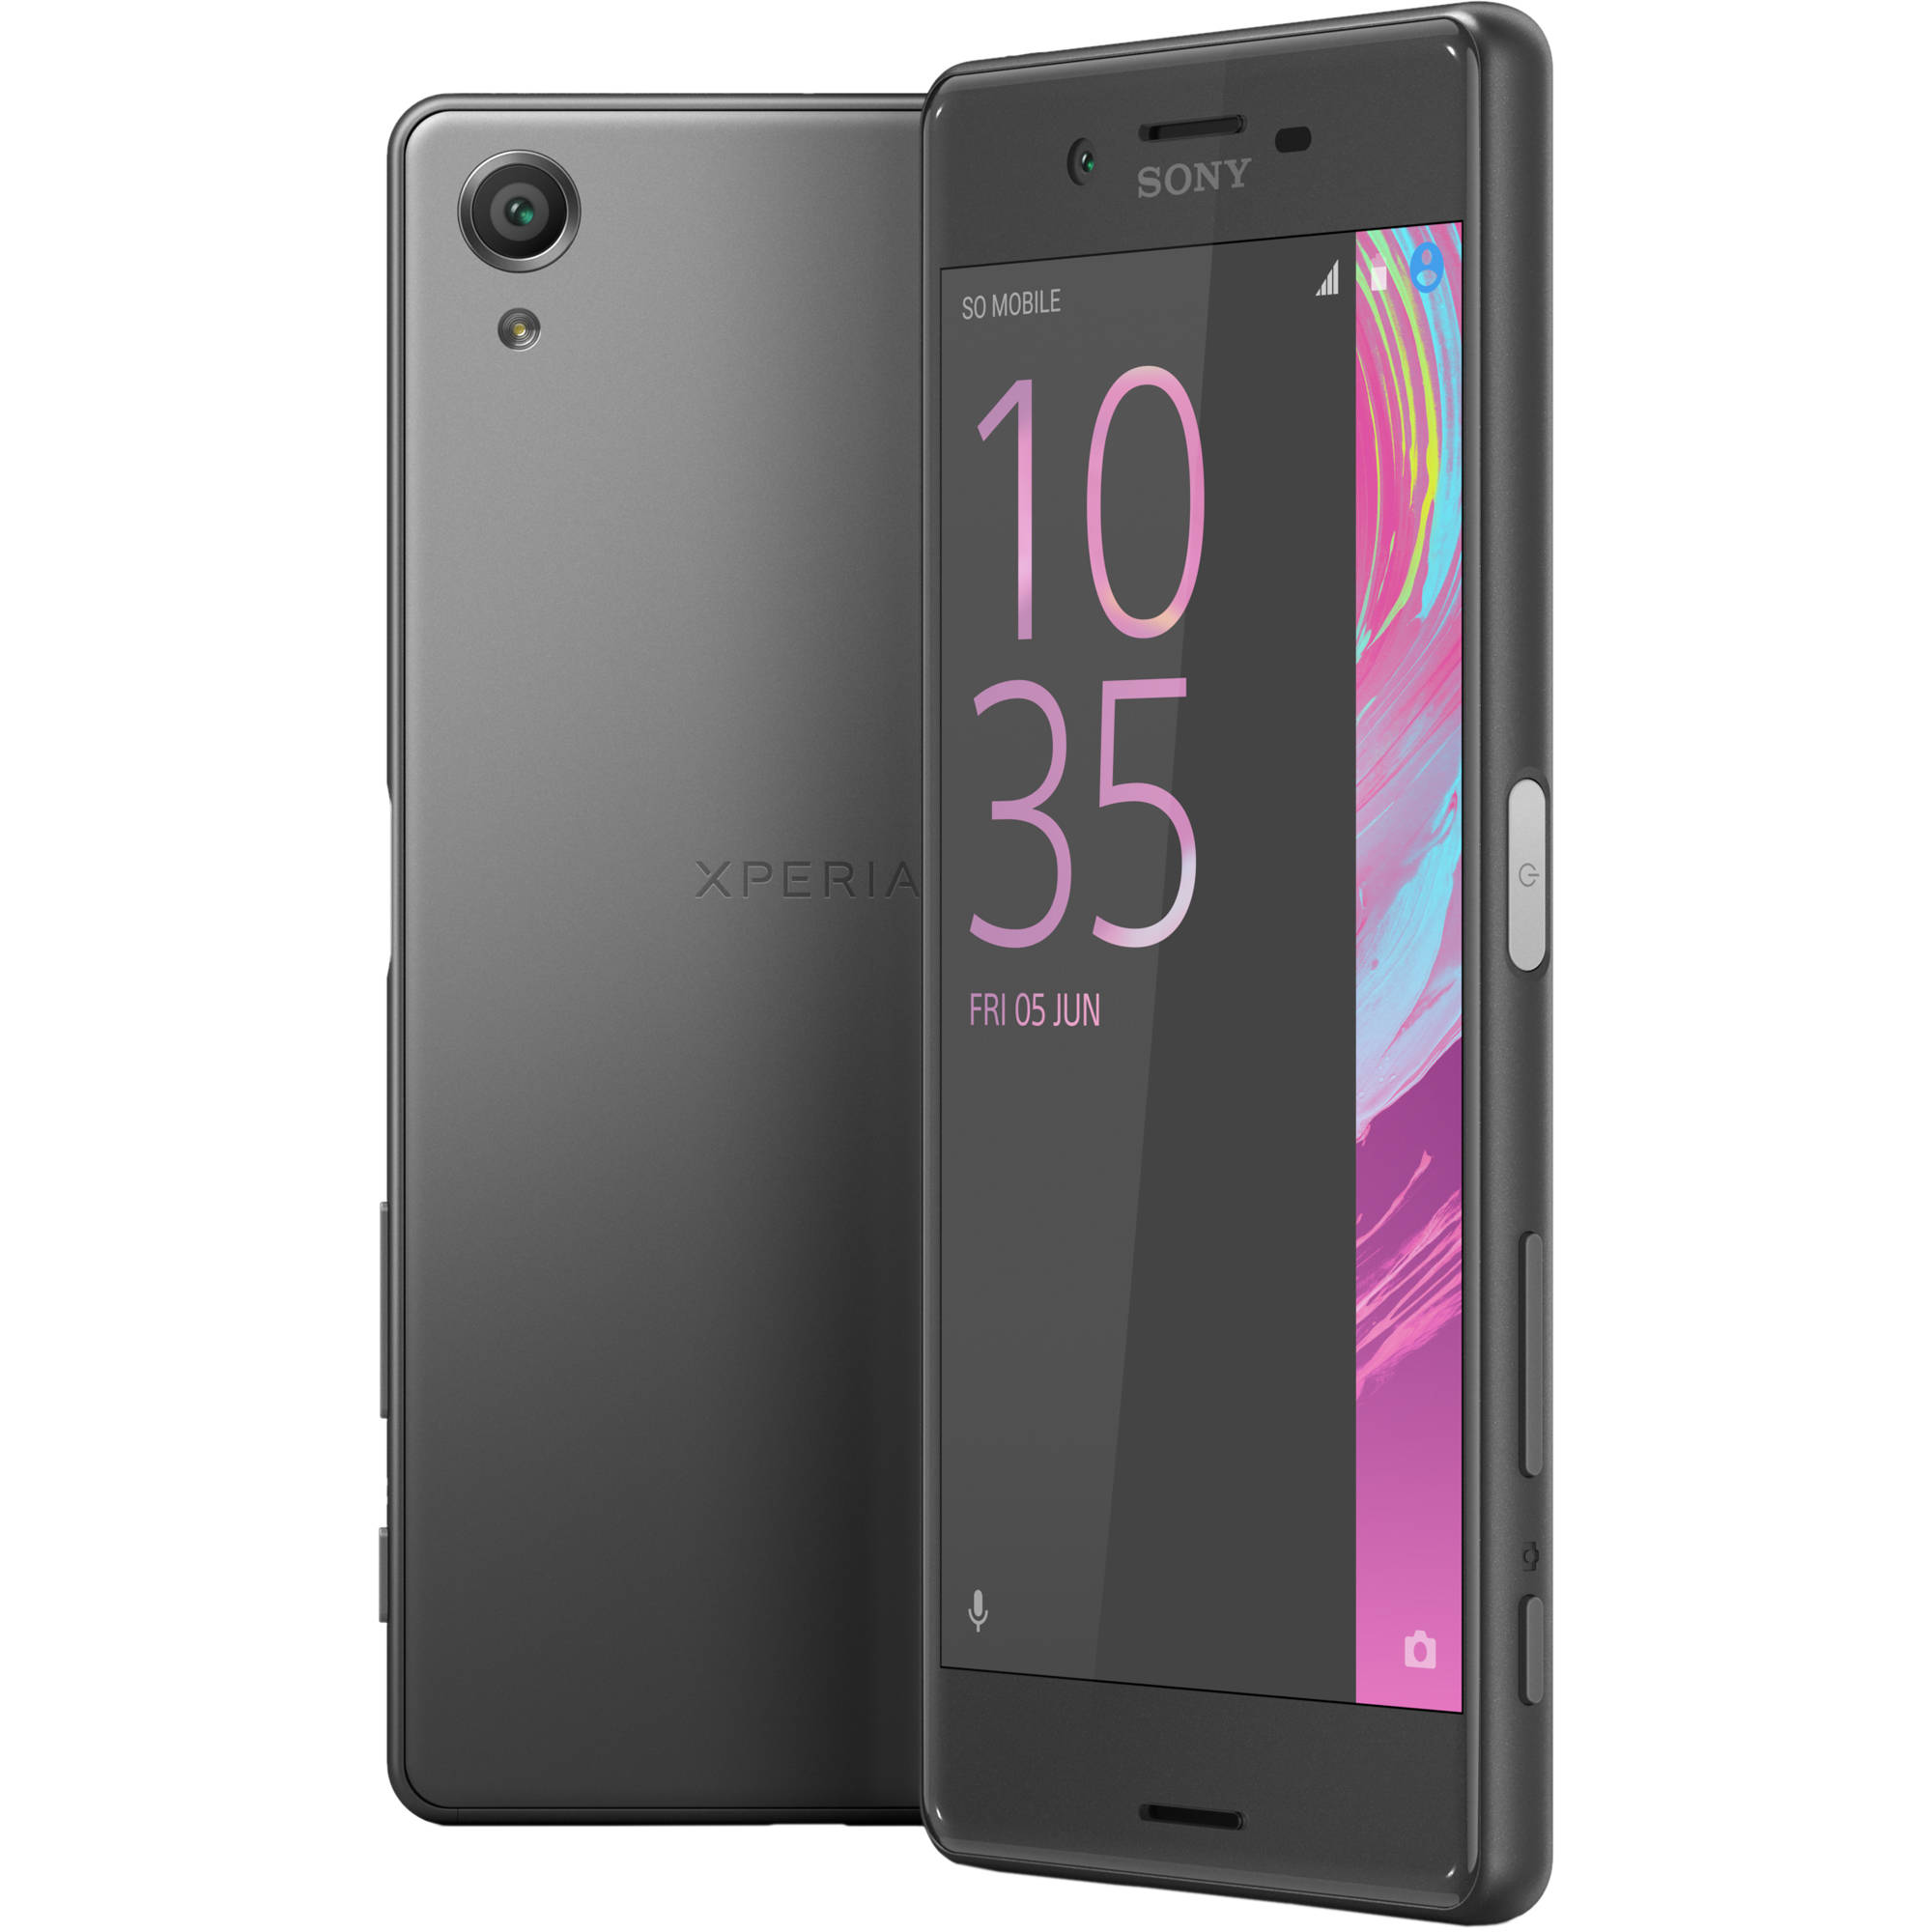 Modernistyczne Sony Xperia X F5121 32GB Smartphone 1302-5762 B&H Photo Video OC94